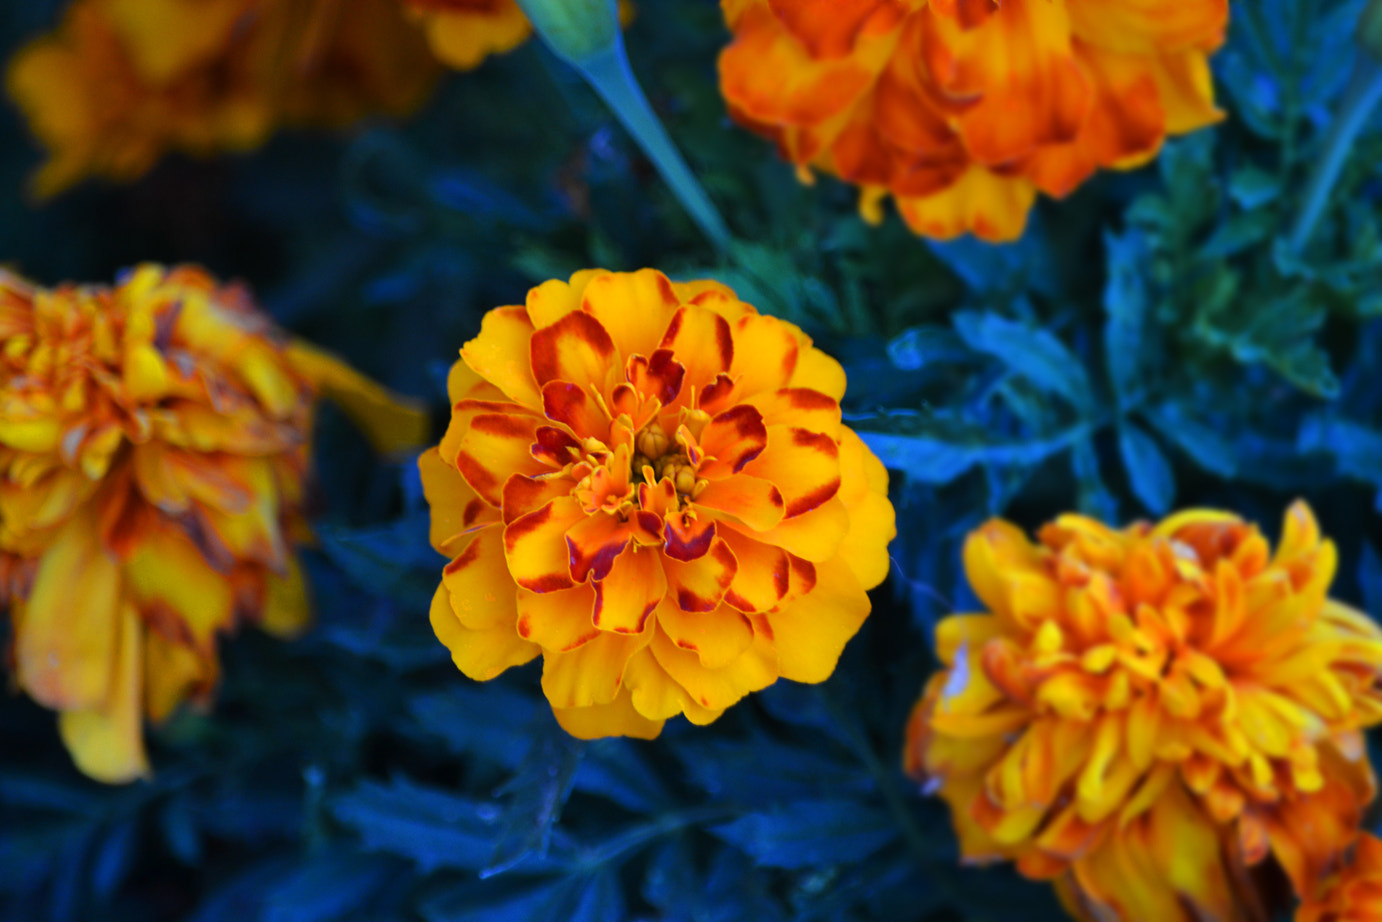 Photograph Flowers & colours by Eleonora Spisni on 500px